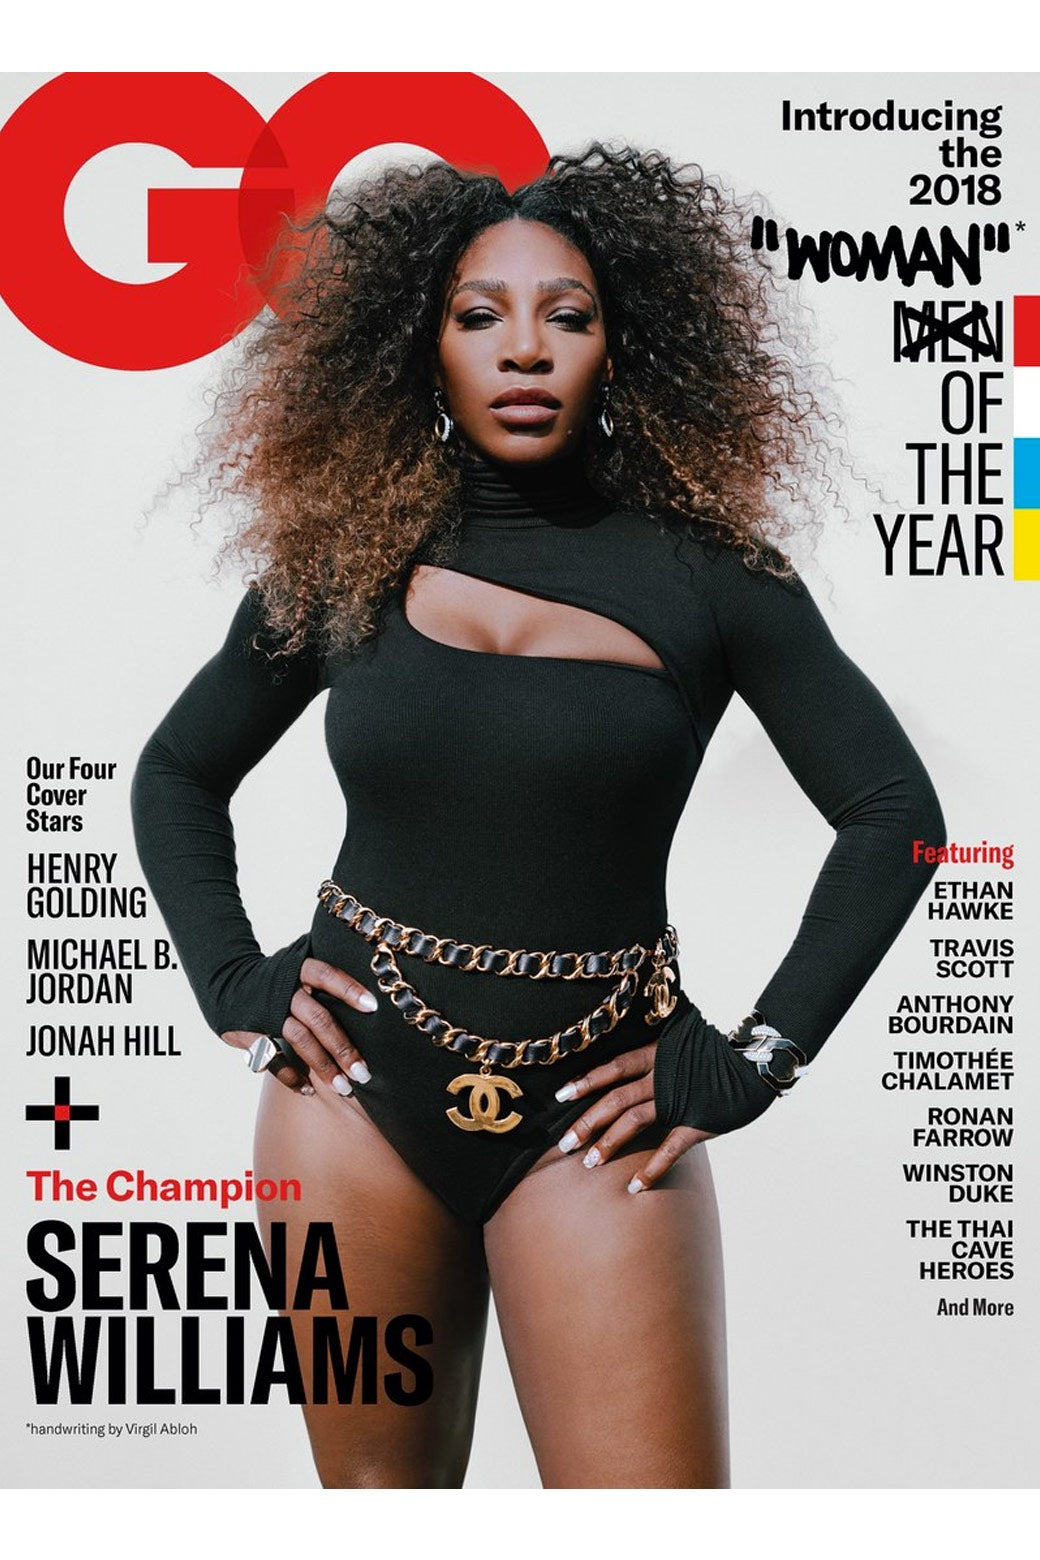 Serena Williams on the cover of GQ magazine.